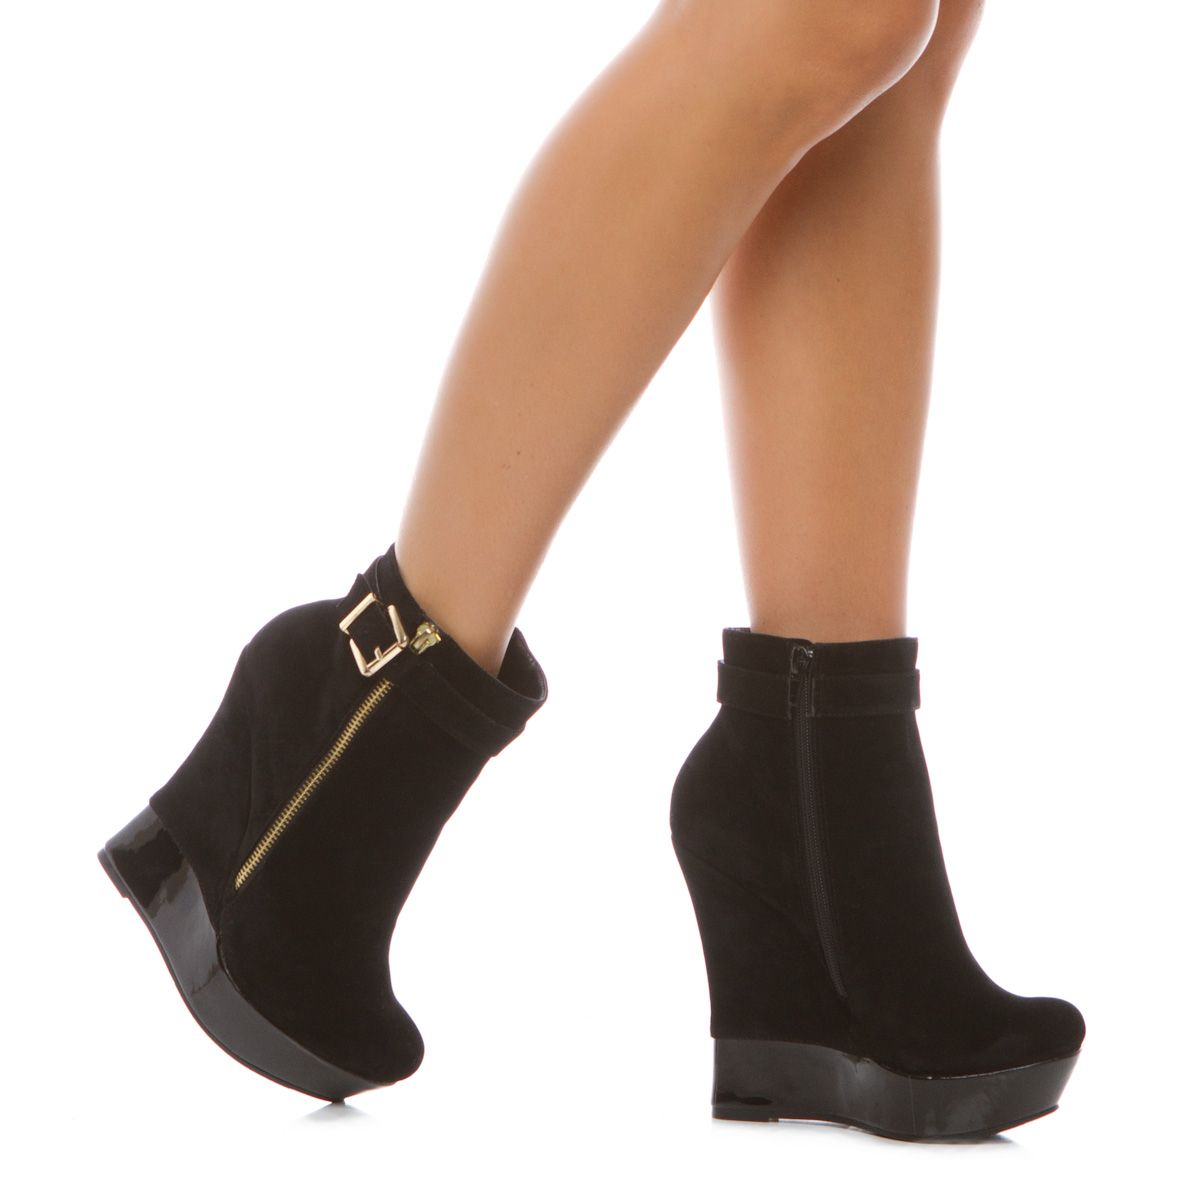 how fun are these with the little patent bottom!